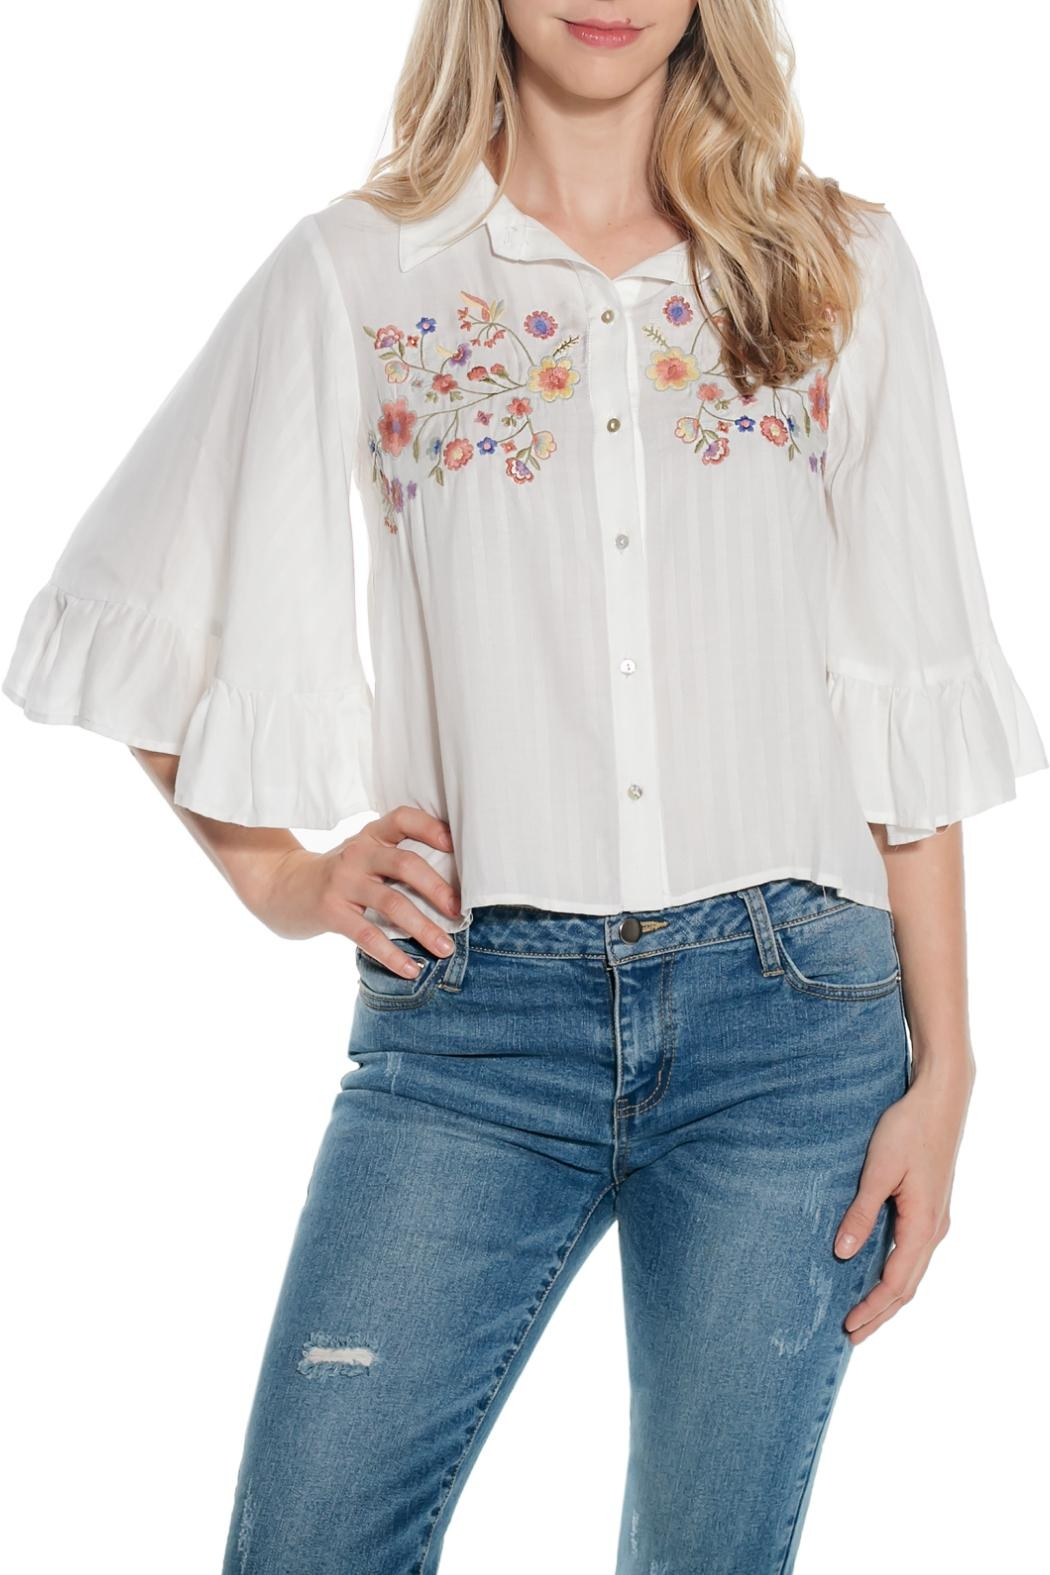 Taylor & Sage Shadow Stripe Blouse - Front Cropped Image